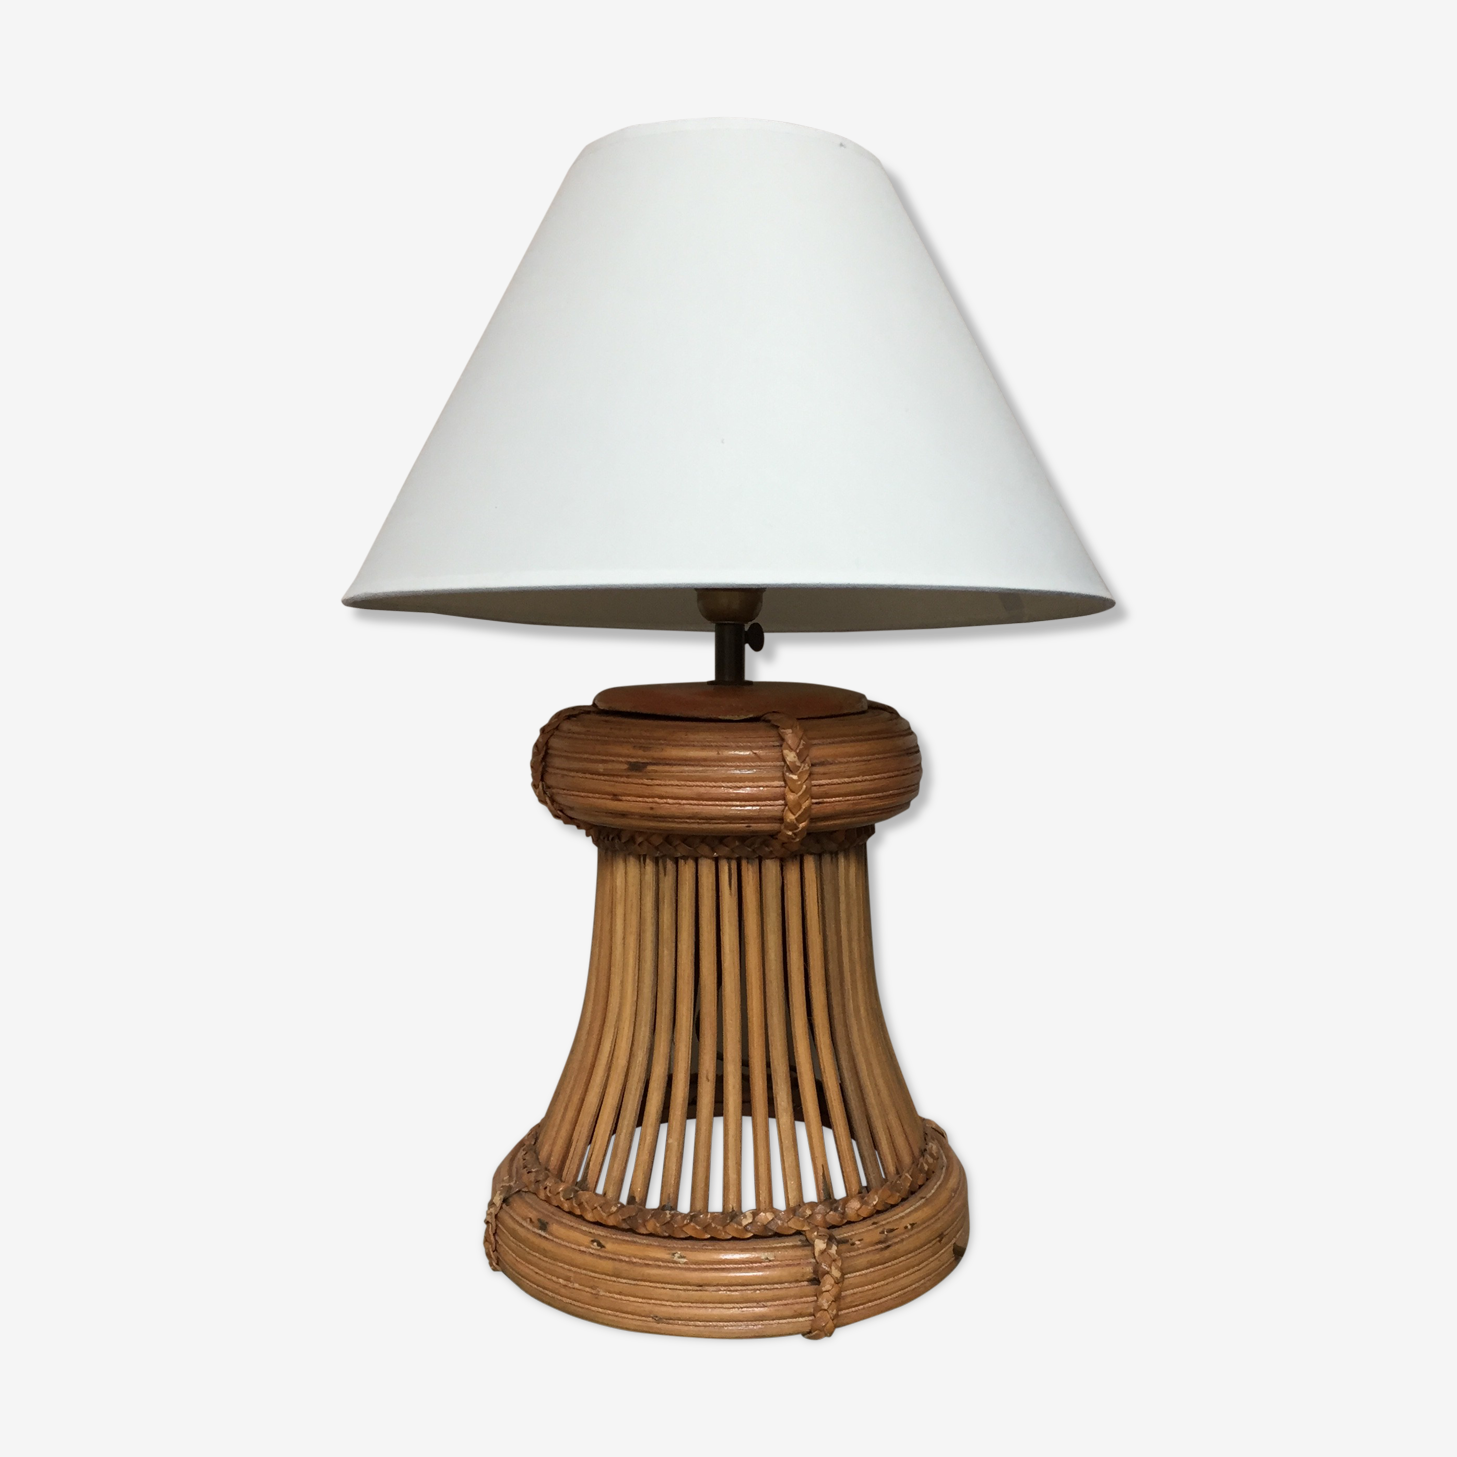 Lamp in wicker and rattan 60s